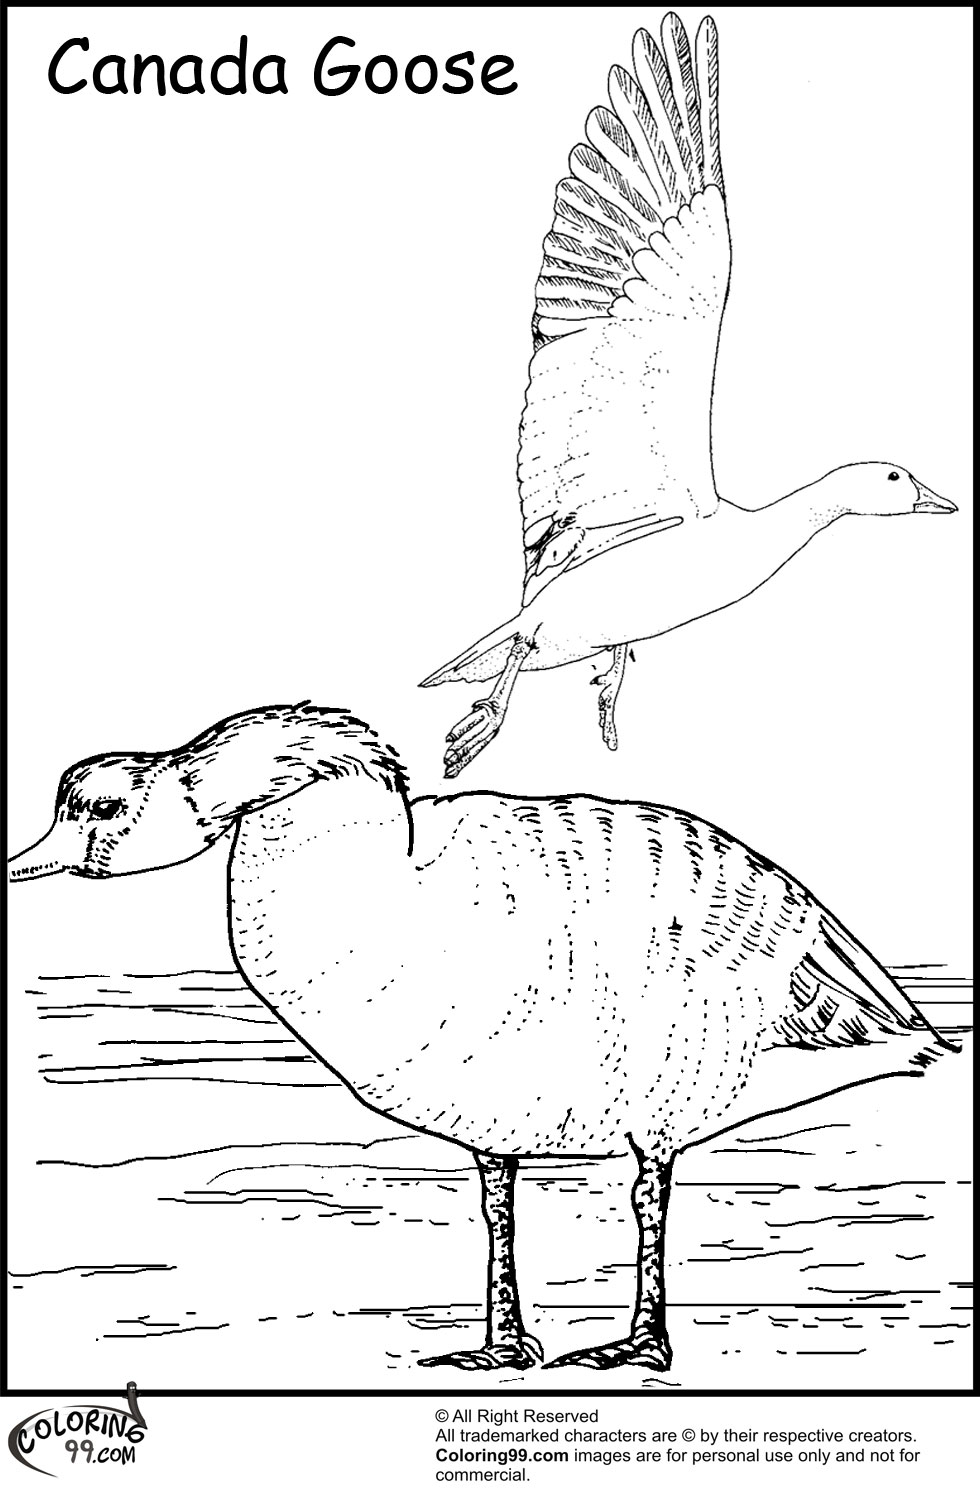 Geese Migration coloring #17, Download drawings